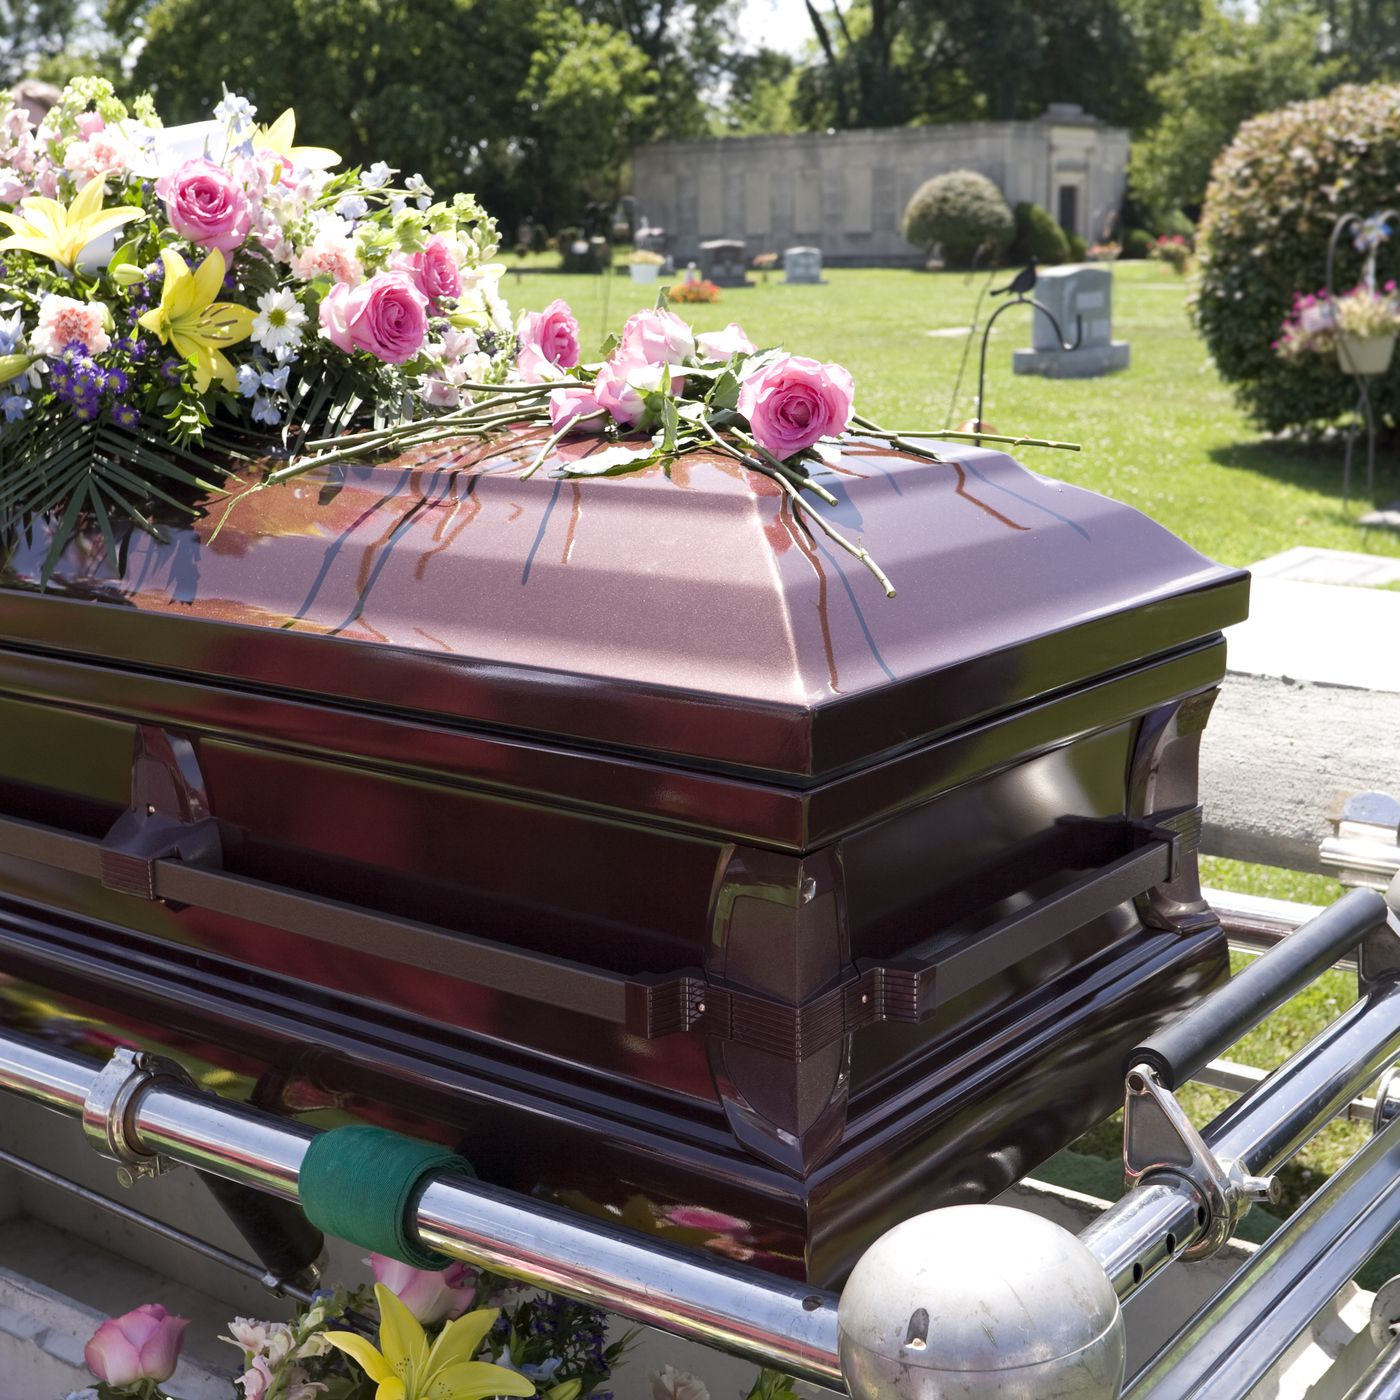 What your future burial outfit says about you racked izmirmasajfo